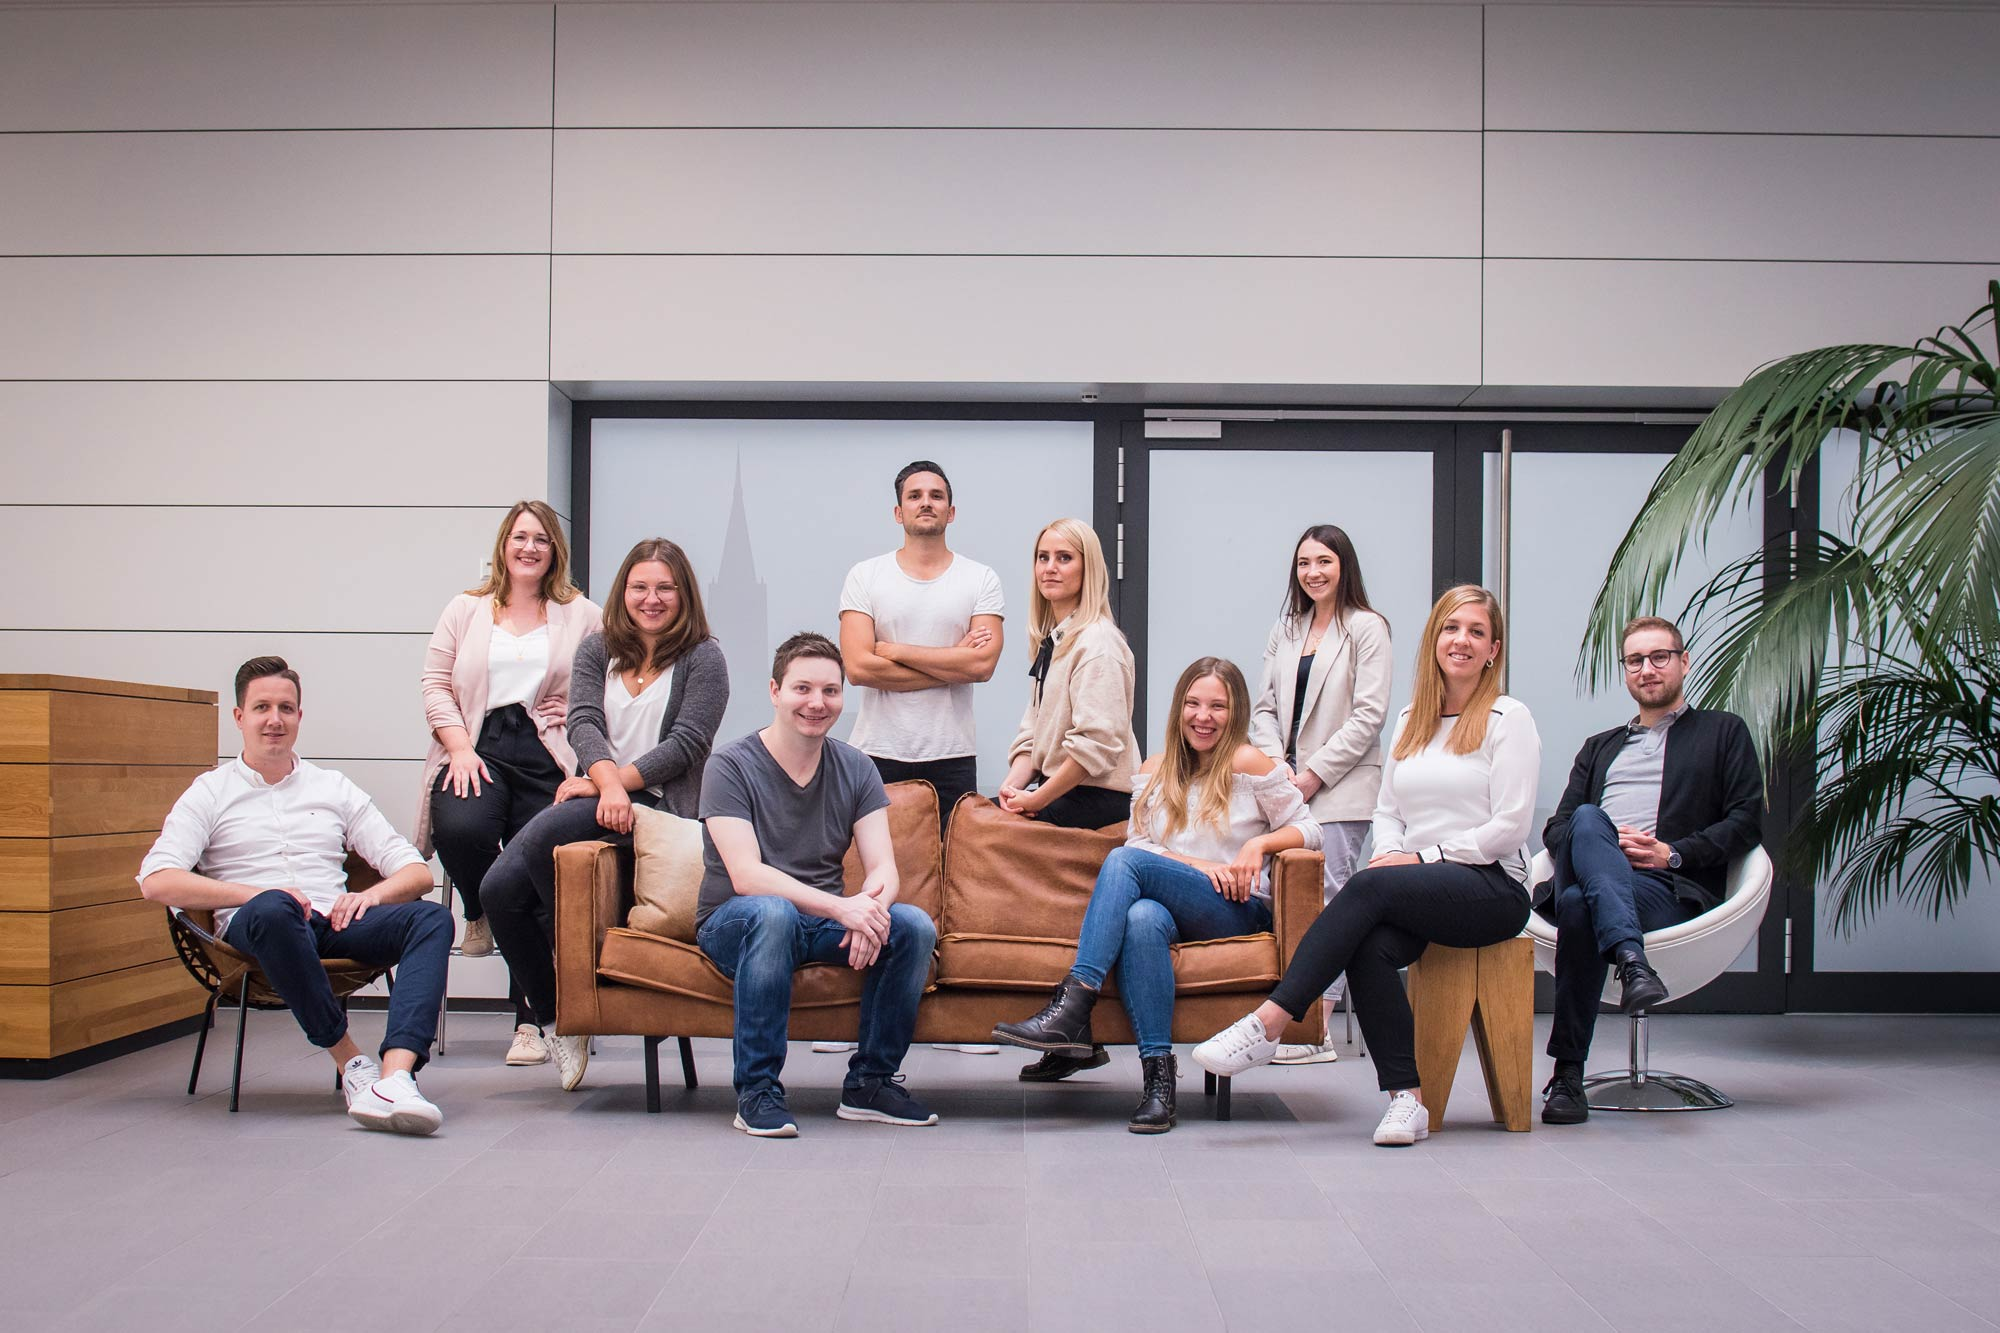 Das Team der NPG digital - Online Marketing Agentur in Ulm